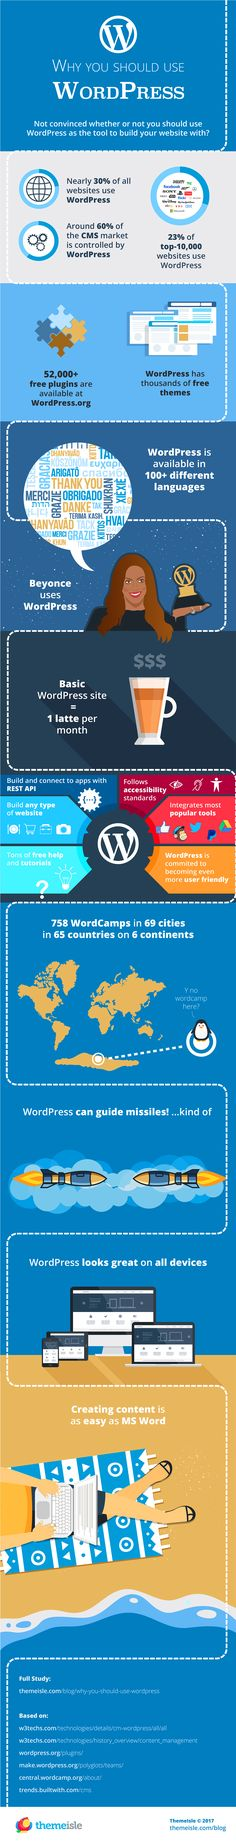 """""""Why use WordPress?"""" Today, we give you the answer. Here's an infographic showing you 18 good reasons why you should use WordPress. Social Media Digital Marketing, Facebook Marketing, Business Website, Online Business, Wordpress, Web Design, Simple Website, Job Posting, About Me Blog"""